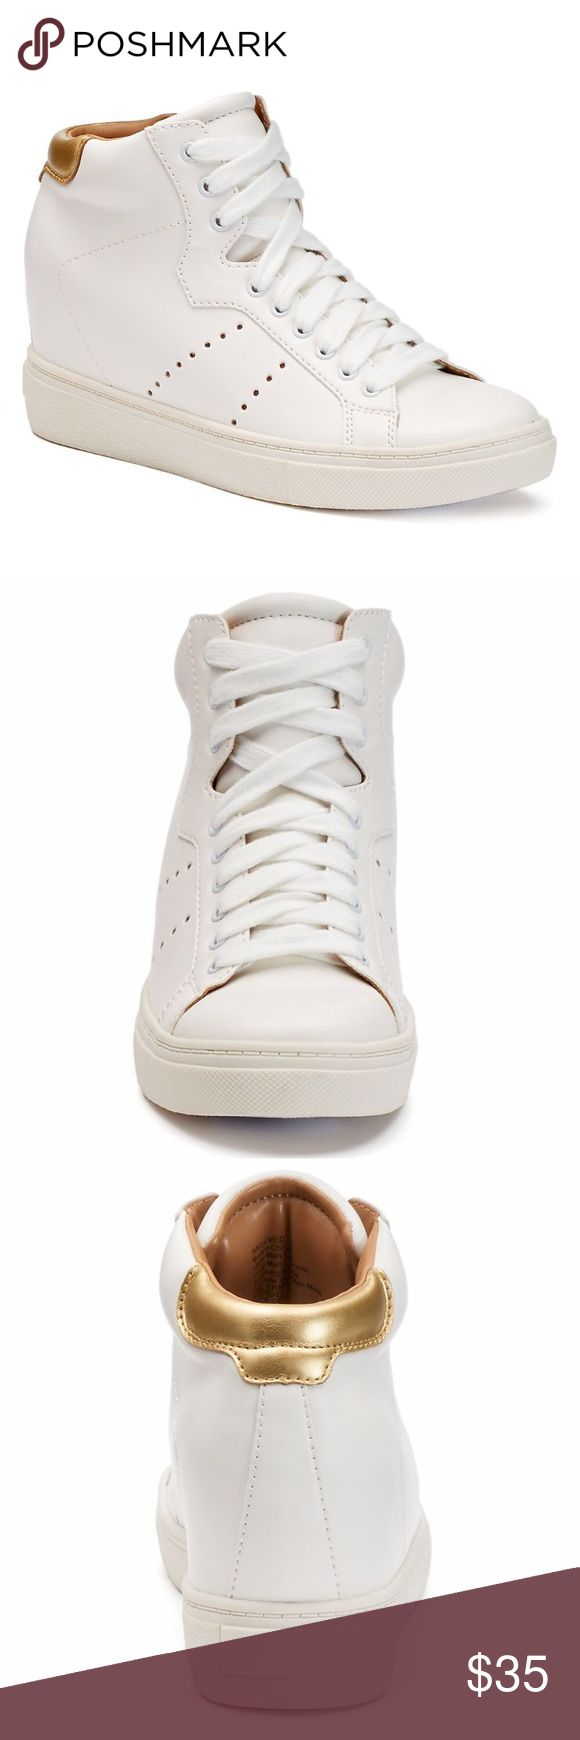 """NWT. White wedge sneaker NWT. White & gold wedge sneaker. Features high top, hidden wedge, padded collar and tongue, round toe, lace up closure, padded footbed, 3"""" heel and 0.75"""" platform. Very comfortable. Comes in a box. True to size. Sorry, no trades. Like the item but not the price, feel free to make me a reasonable offer using the offer button. Candie's Shoes Sneakers"""